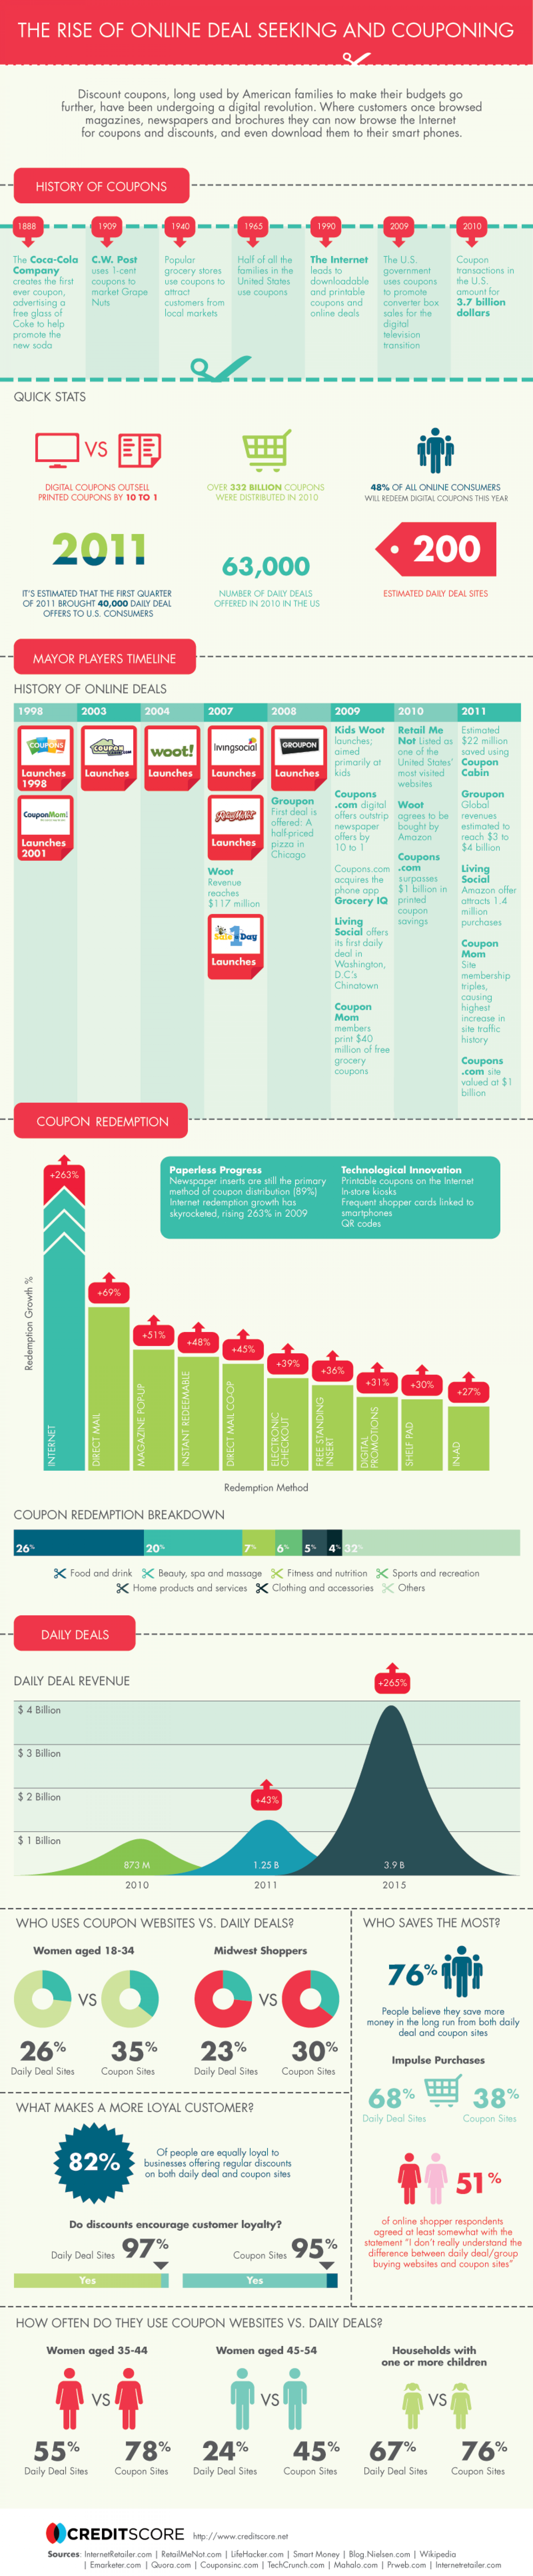 Online Deal Seeking and Couponing  Infographic